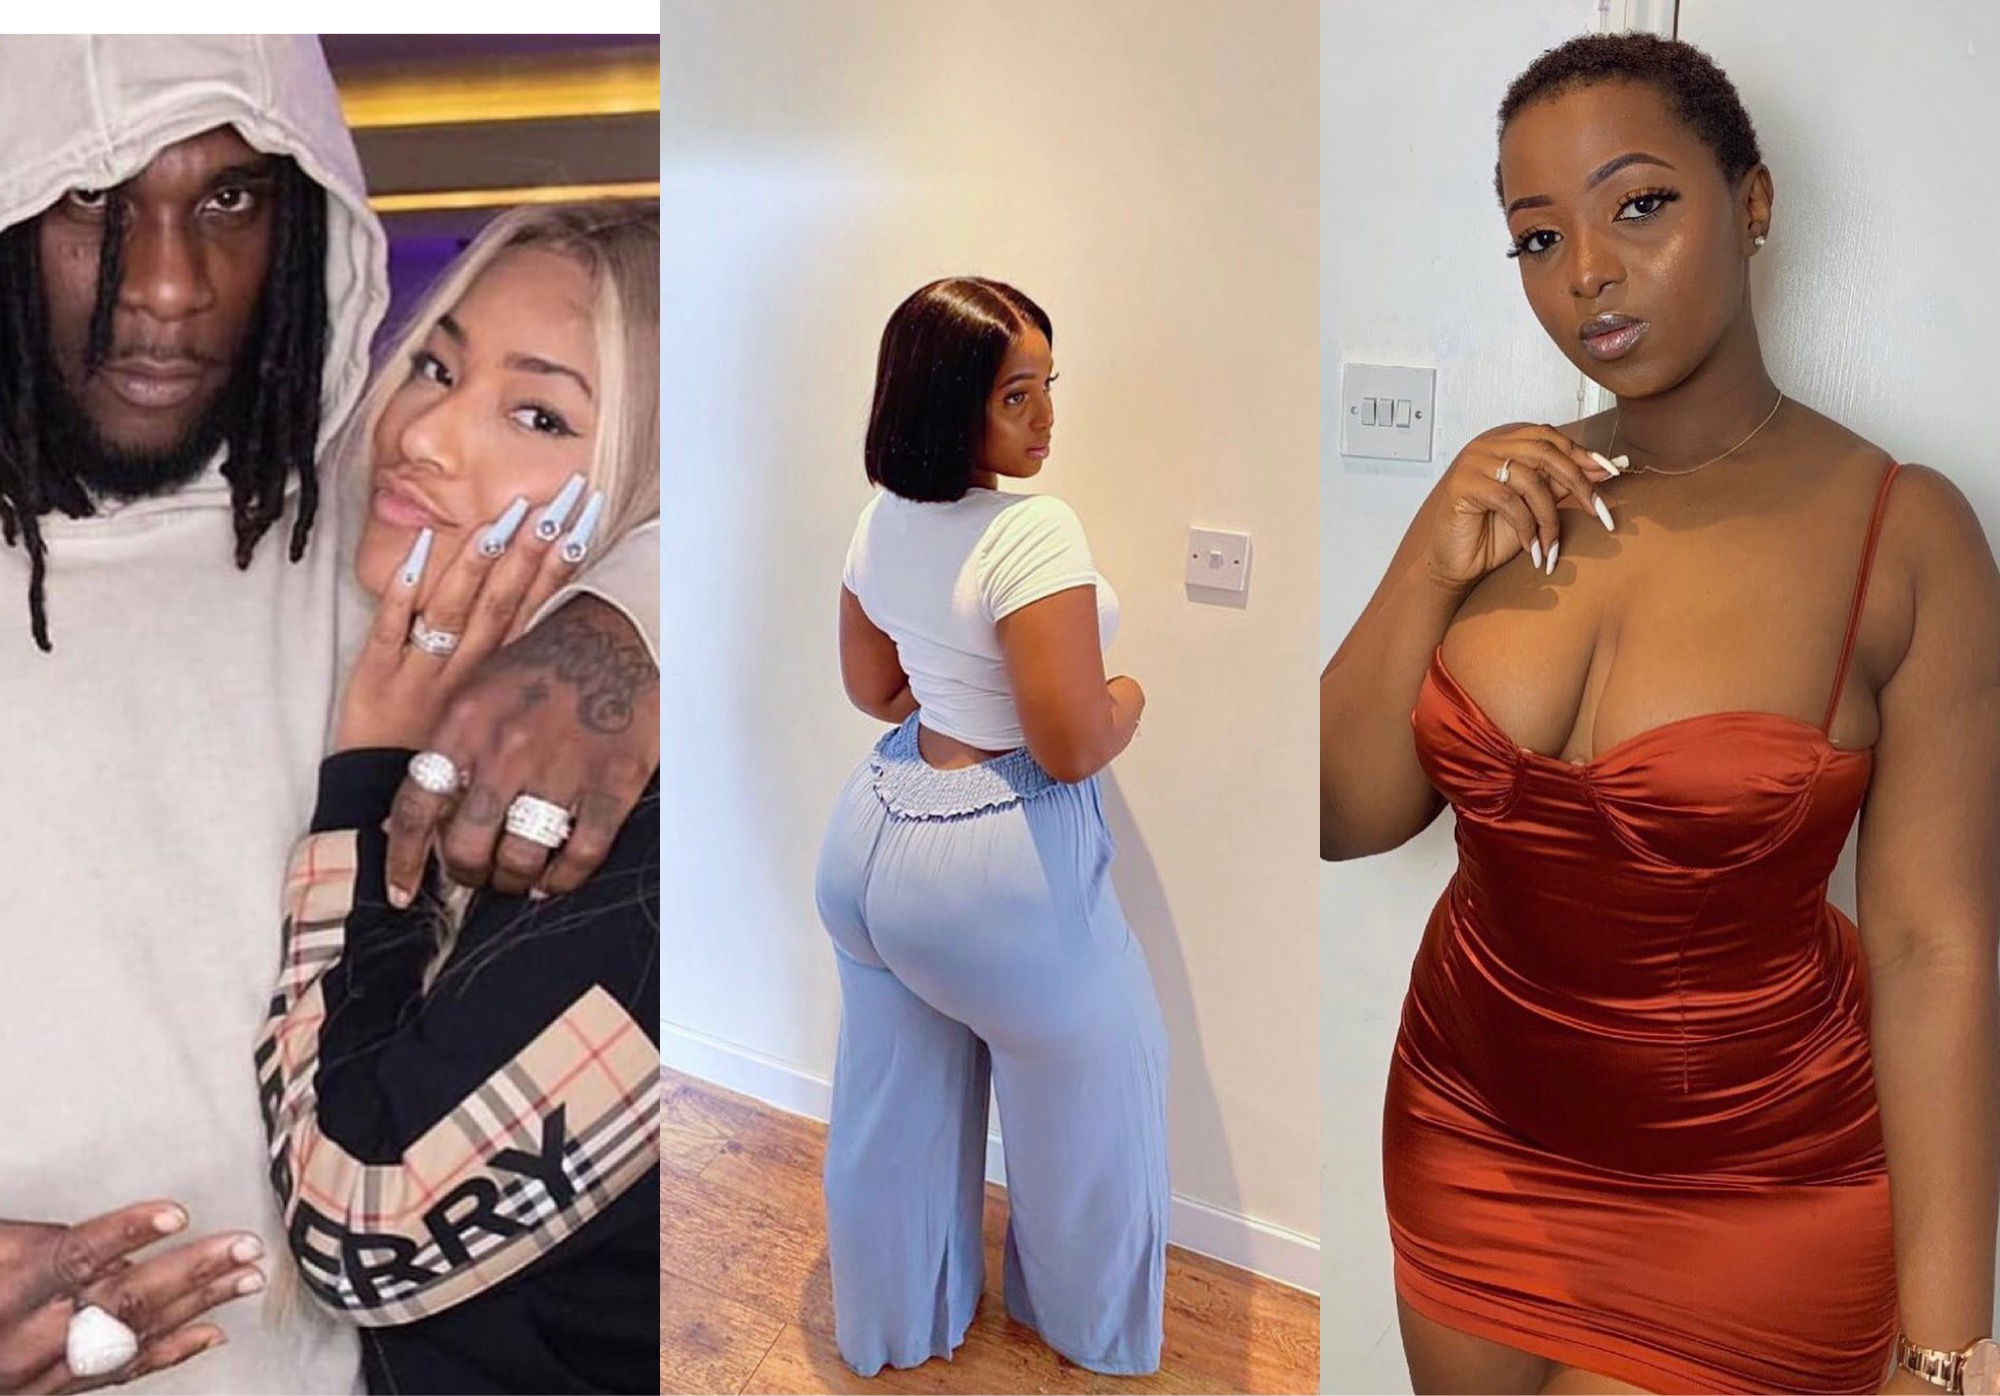 'He Calls Me His Jollof Rice' - Burna Boy's Alleged Side Chick Exposes Him For Cheating